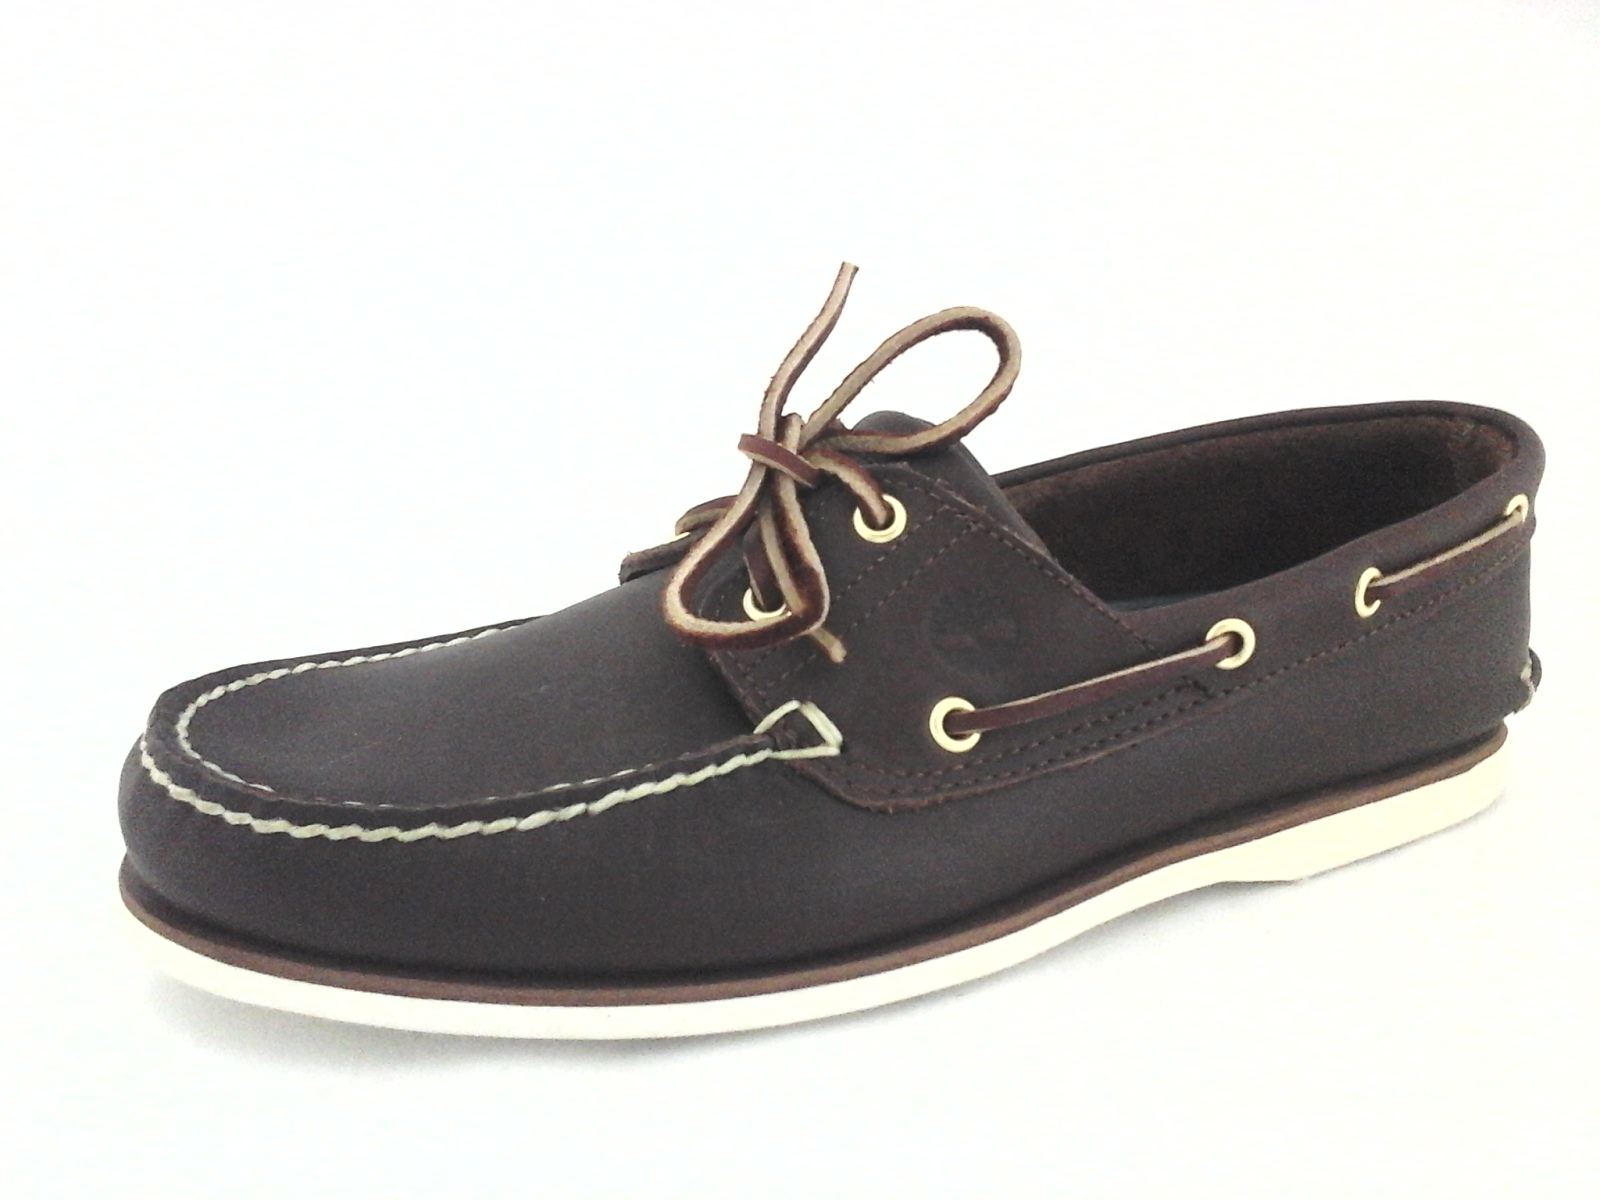 melodía Presidente dividendo  TIMBERLAND Boat Shoes Loafers Brown Slip On Casual Men's US 11.5 EU 44.5  $100   eBay